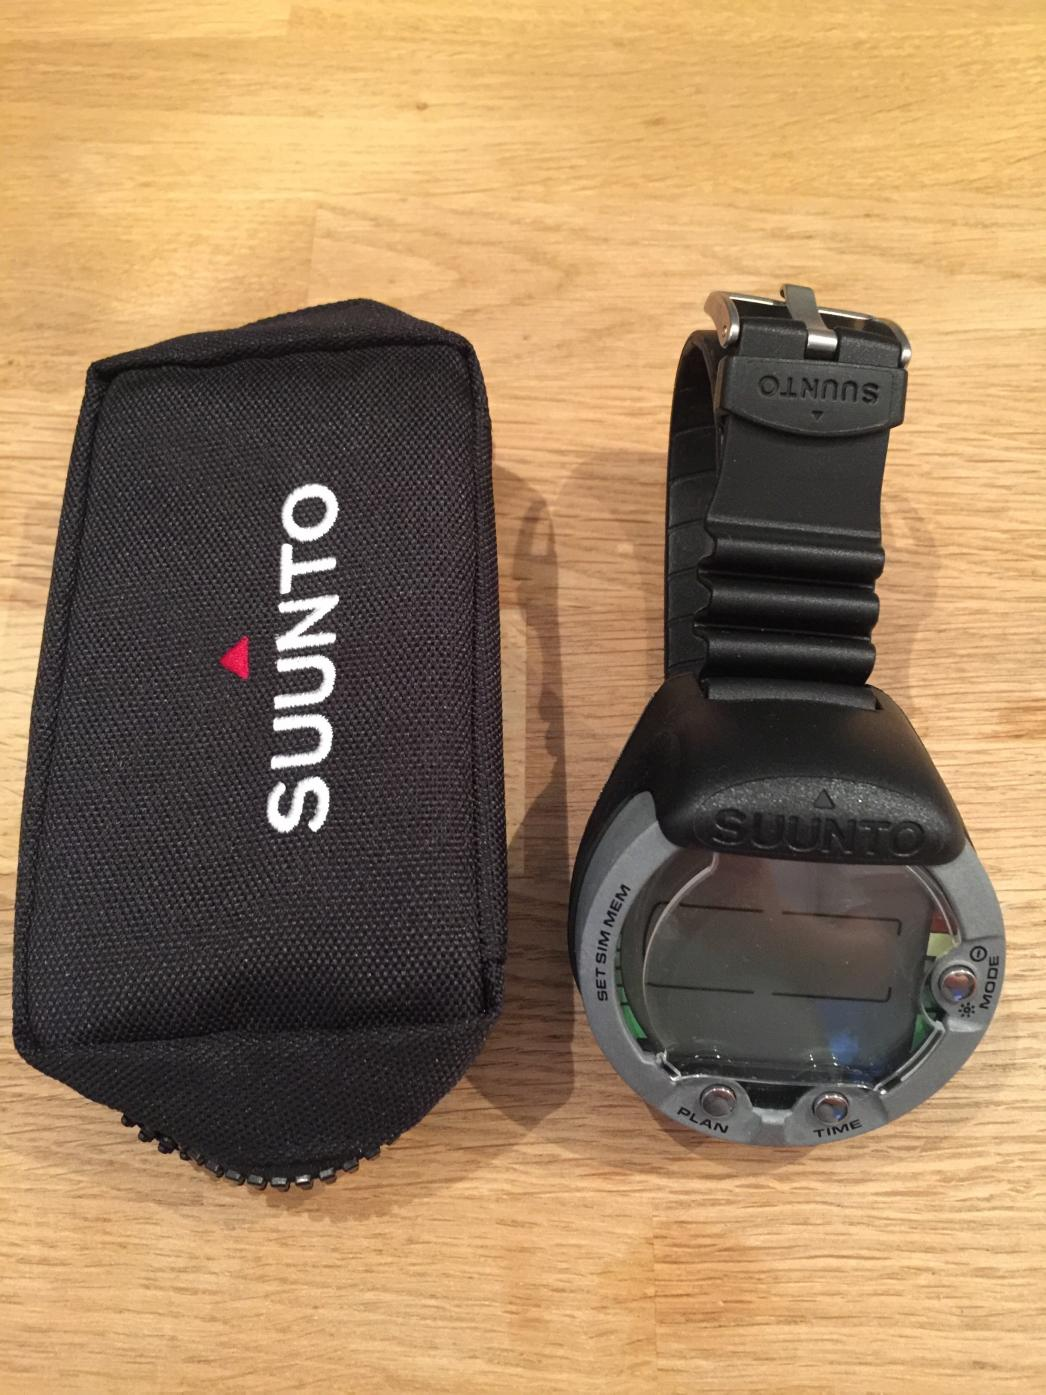 Click image for larger version.  Name:suunto.jpg Views:91 Size:193.6 KB ID:49837